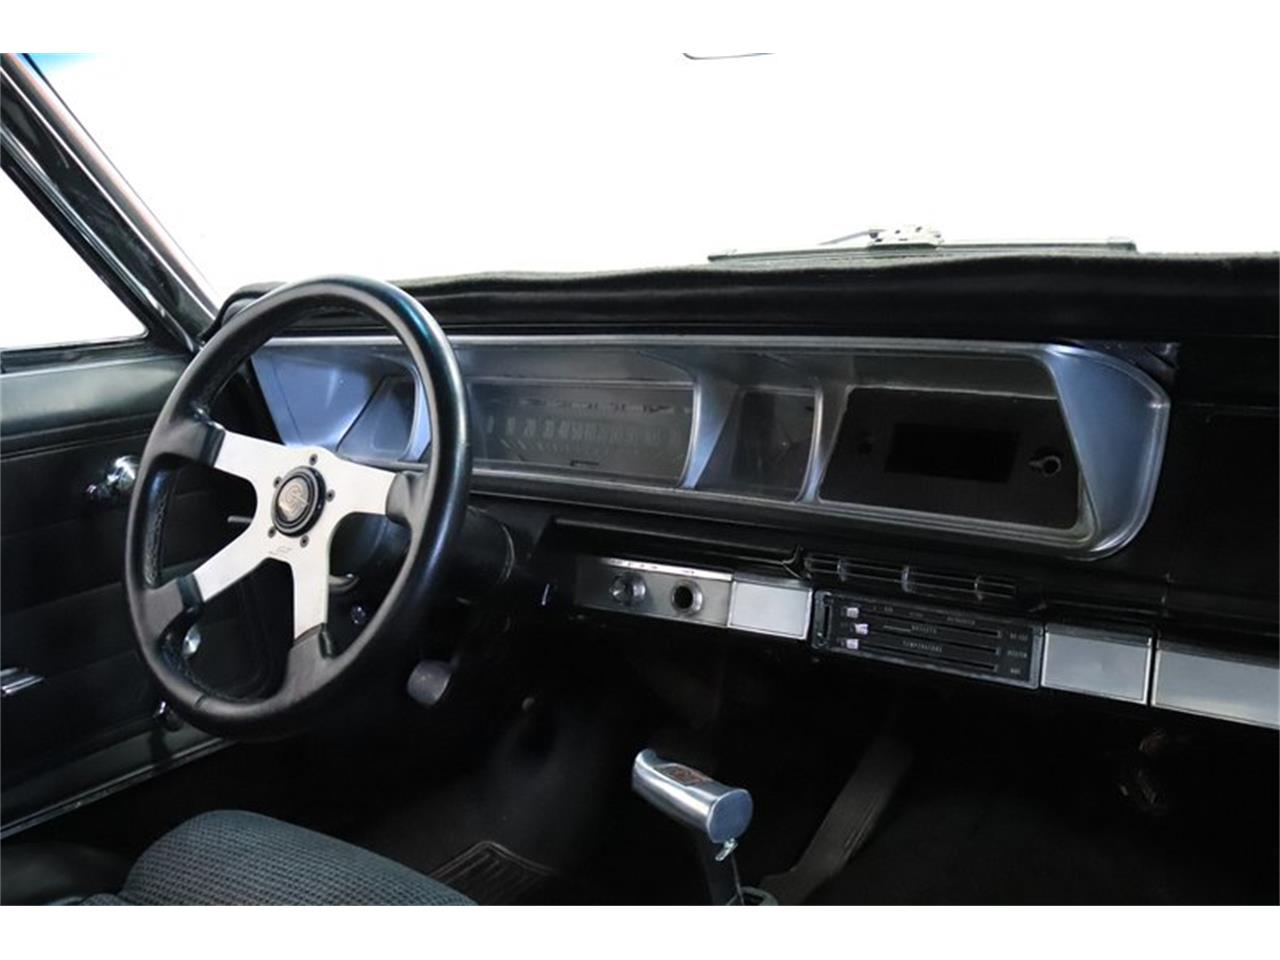 Large Picture of 1966 Impala located in Arizona Offered by Streetside Classics - Phoenix - Q2EL